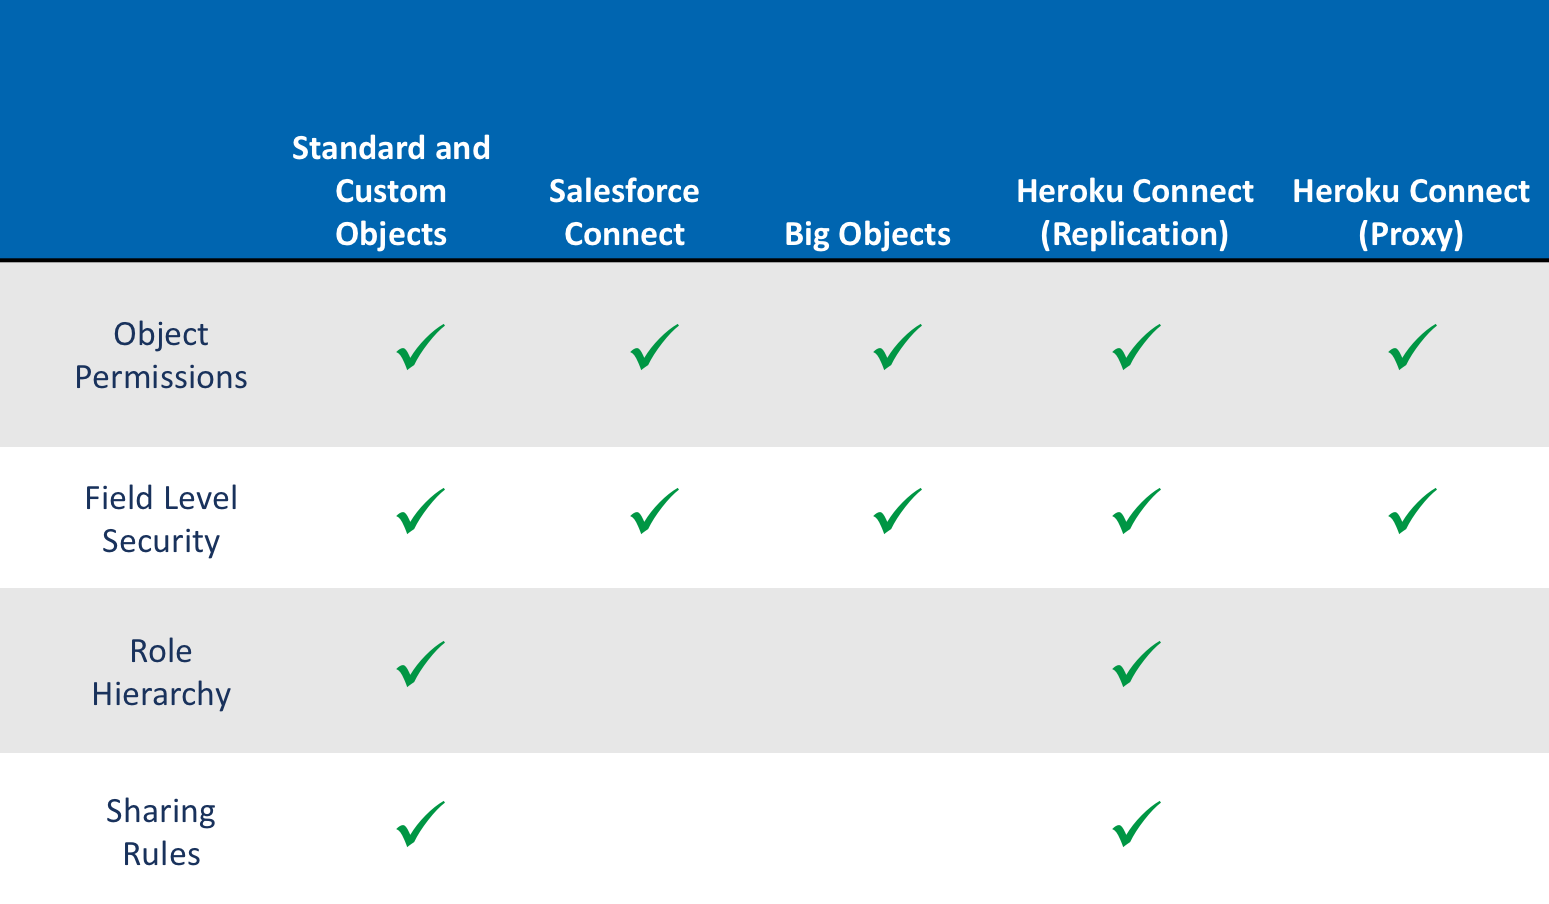 Standard and custom objects allow all Salesforce data security features: object permissions, field-level security, role hierarchy, and sharing rules. Salesforce Connect is compatible with object permissions and field level security. Big Objects allow object permissions and field-level security.